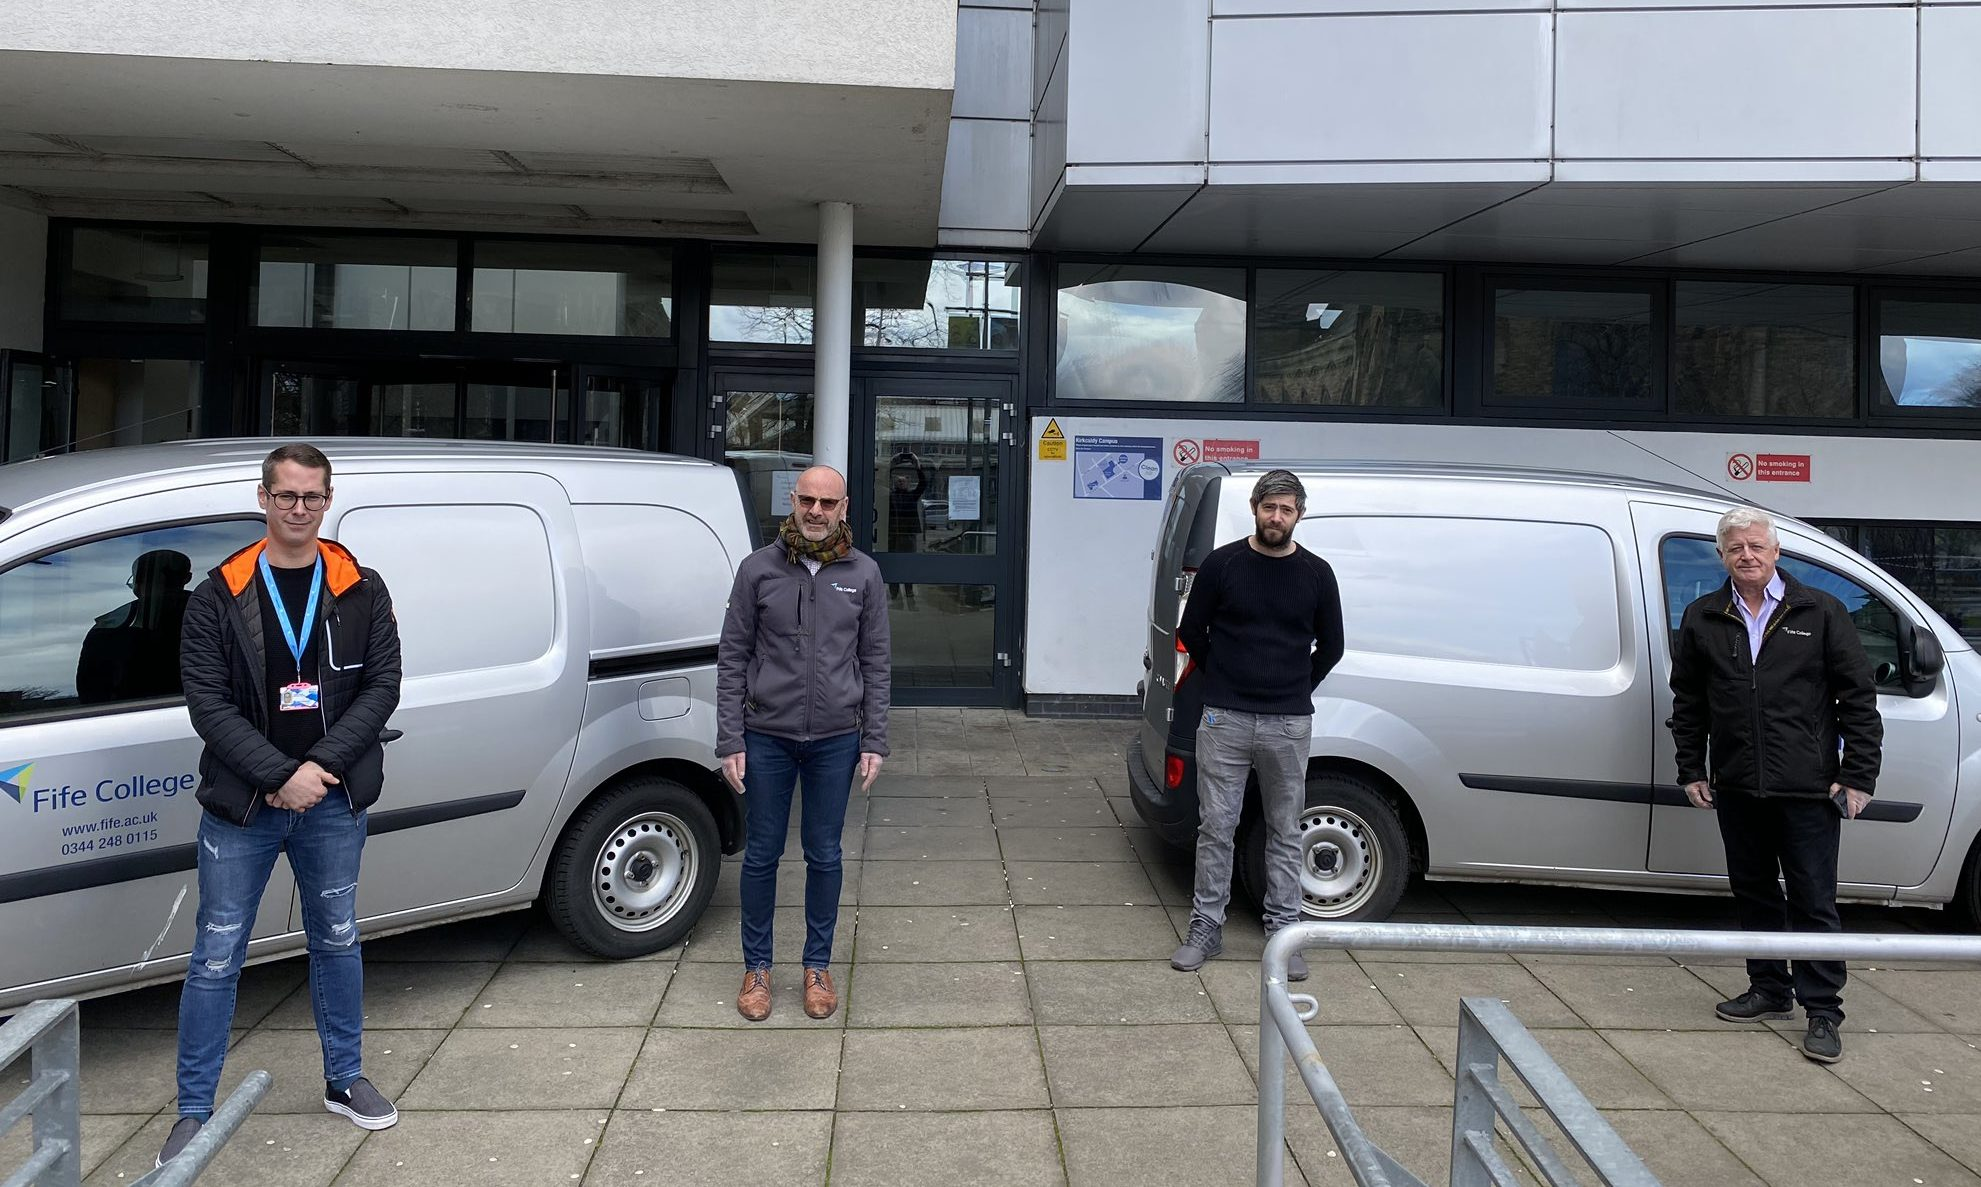 From left, Kris Getchell, chief information officer, Bryan McCabe-Bell, director of business, enterprise and tourism and supported programmes, Stuart McKay, digital services team leader and Hugh Hall, Fife College principal, outside the college's Kirkcaldy campus, preparing to deliver devices the homes of students.